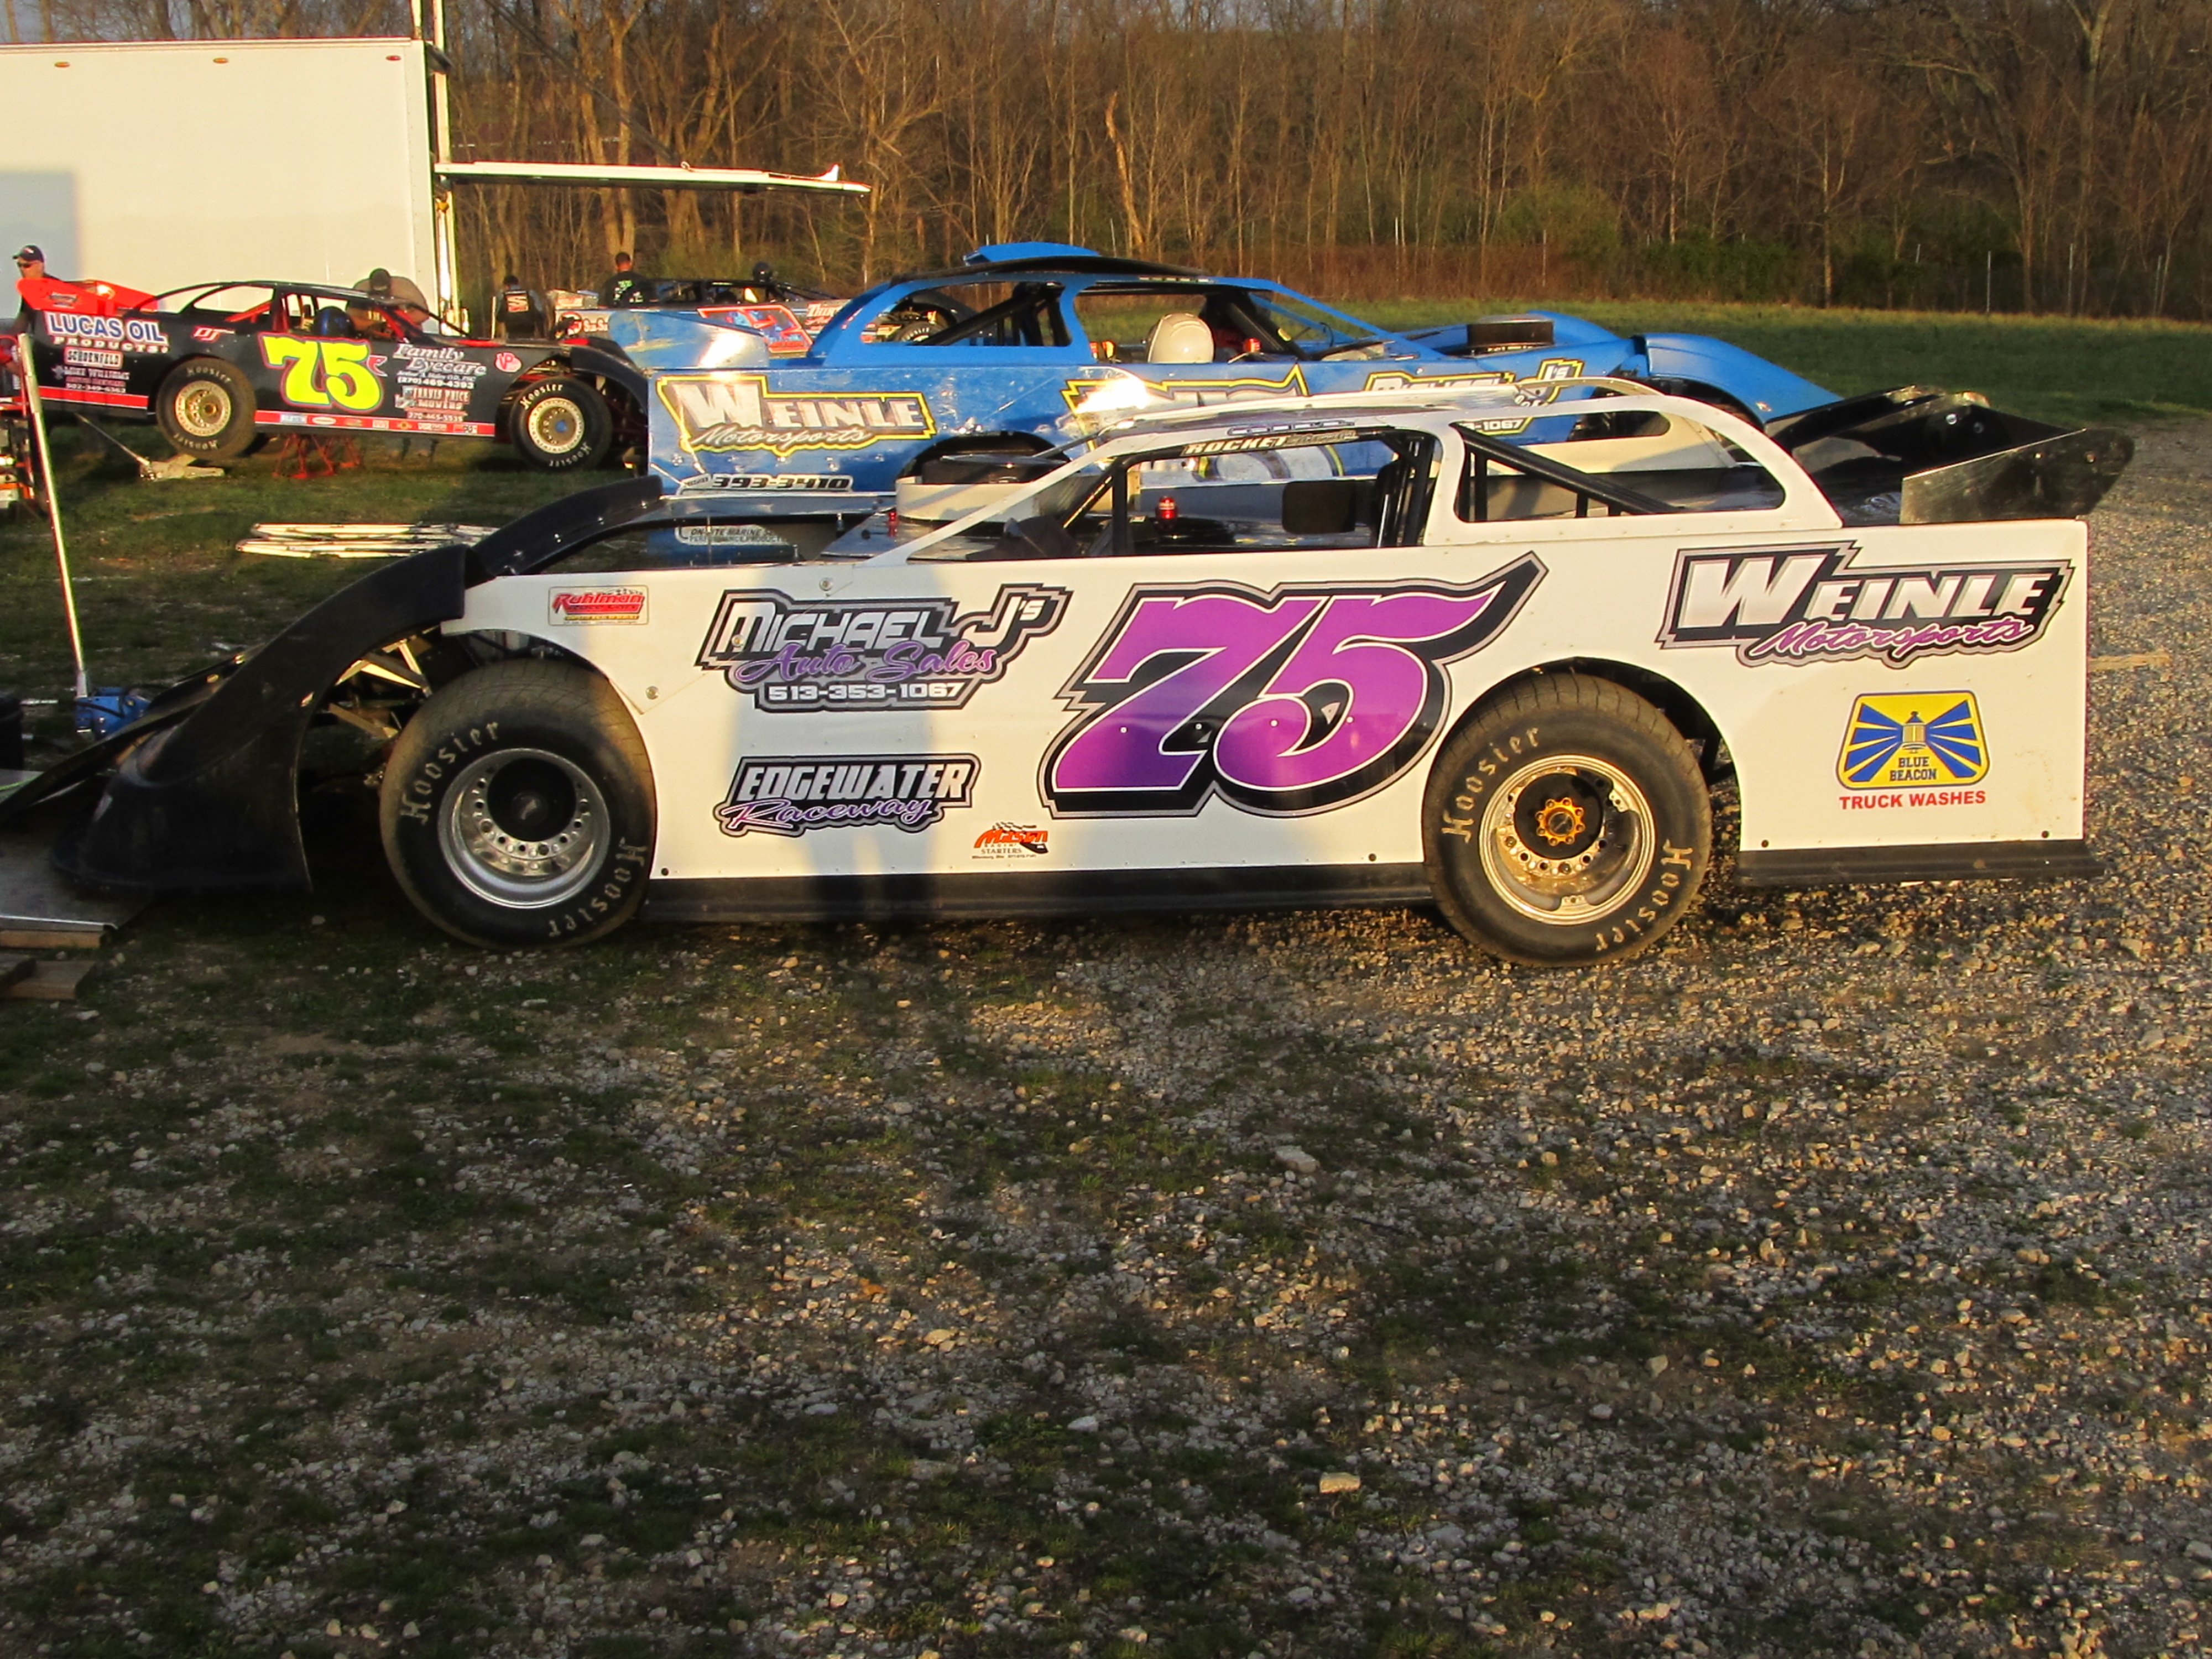 Edgewater-Dirt-Track-Racing | Michael J. Auto Sales | Cleves, OH 45002